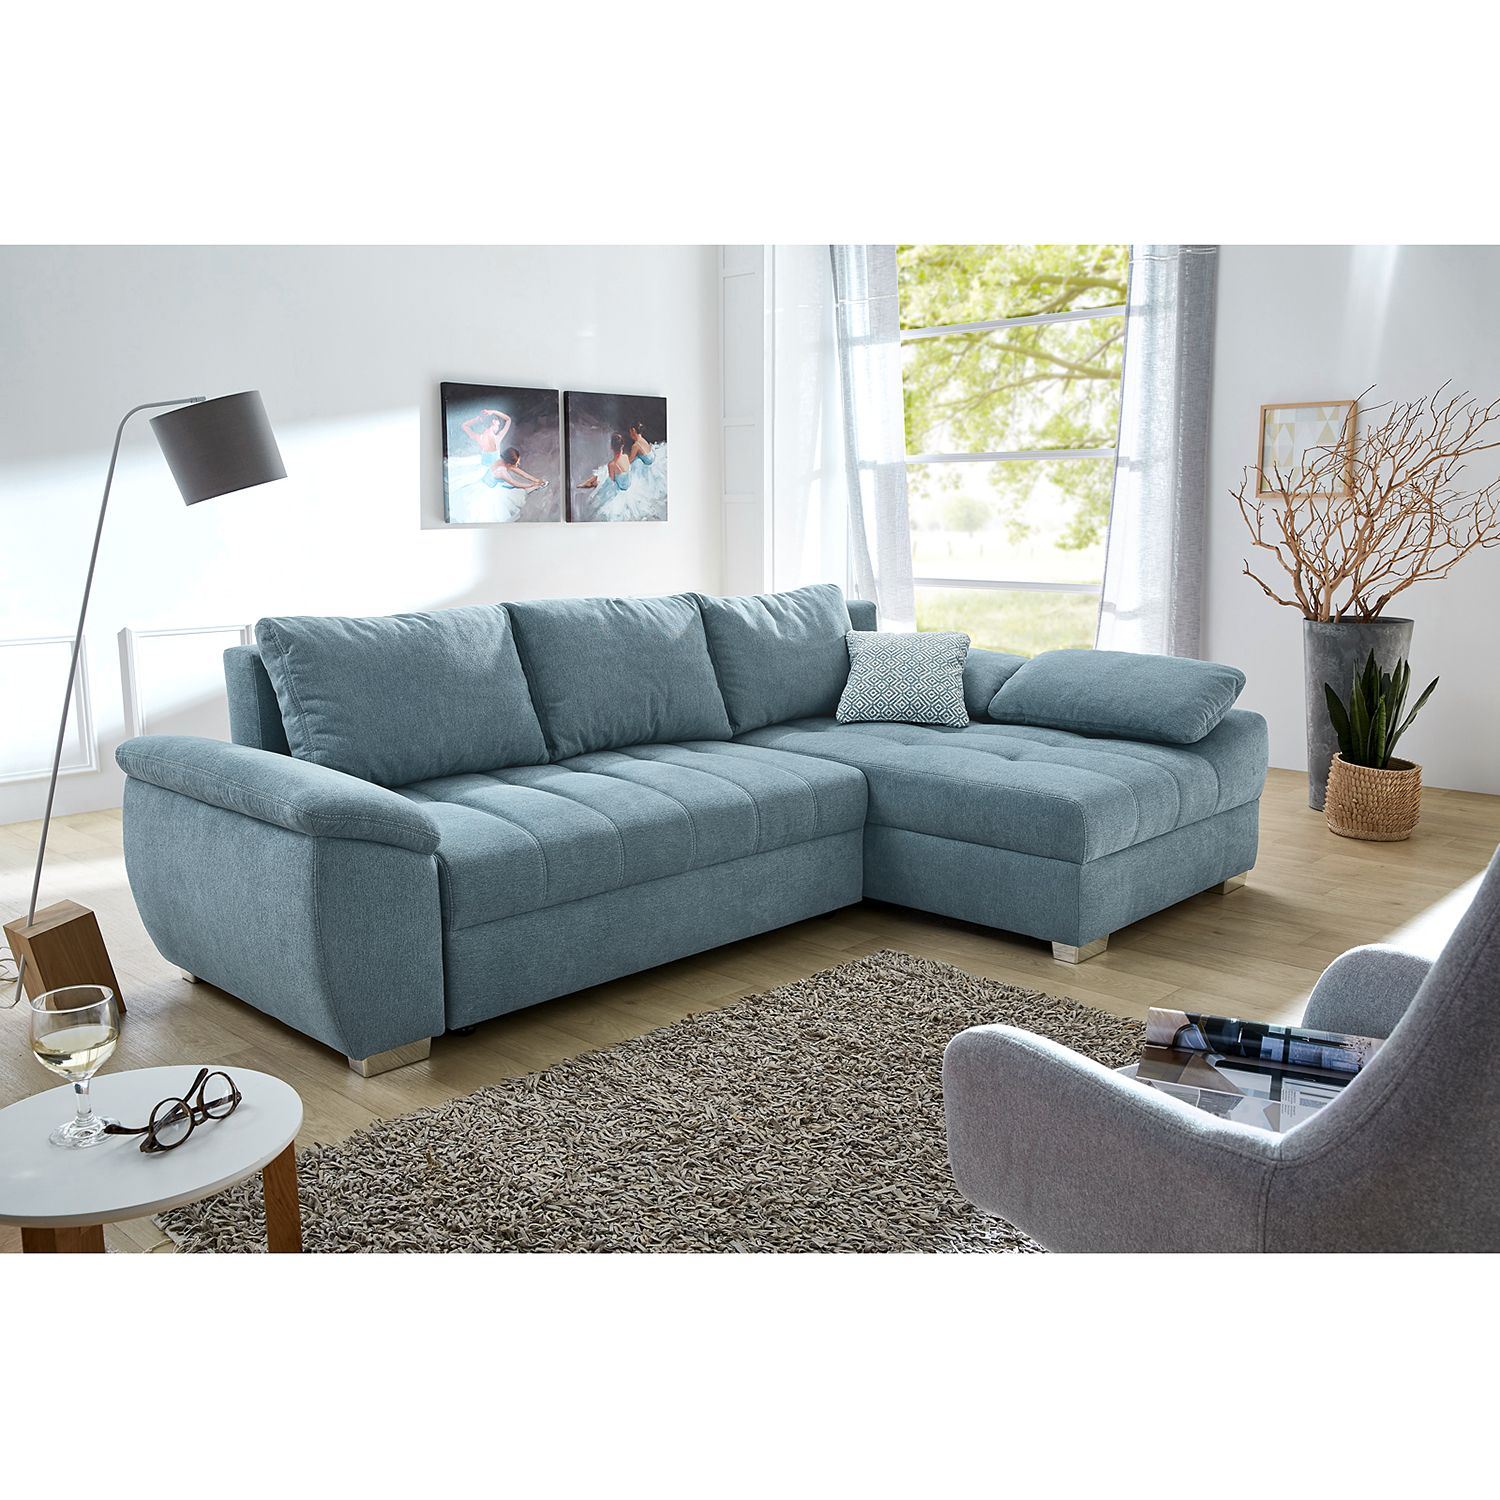 home24 Ecksofa Barraba